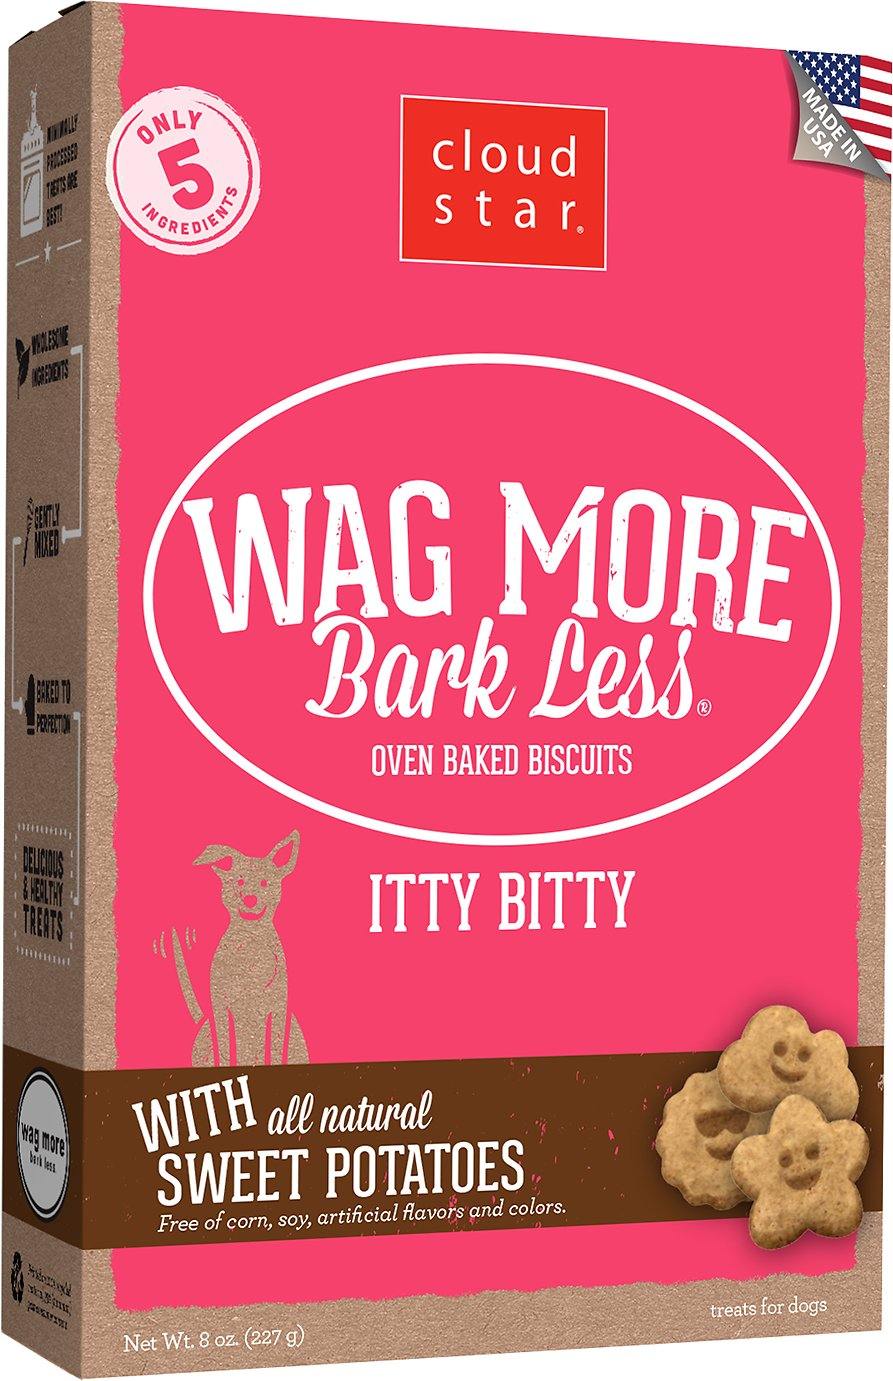 Cloud Star Wag More Bark Less Itty Bitty Oven Baked with Sweet Potatoes Dog Treats, 8-oz box